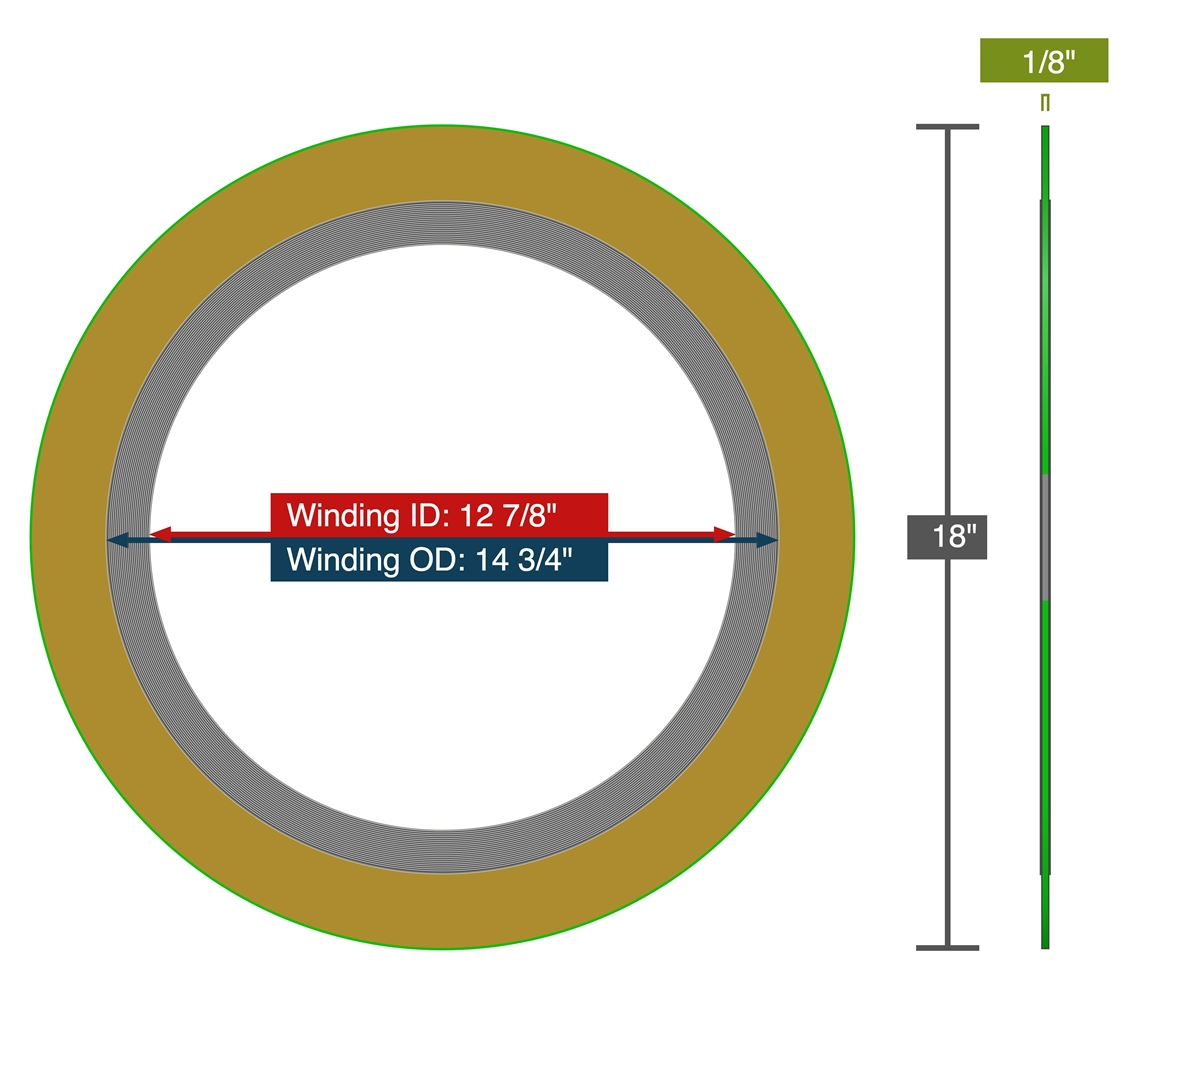 14 Pipe Size Inconel 600 Flexible Graphite Inc Teadit 900014600GR400 Spiral Wound Gasket #400 Class Flange for Applications with High Temperature Variations Thermal Cycling 14 Pipe Size Assigned by Sur-Seal Sur-Seal